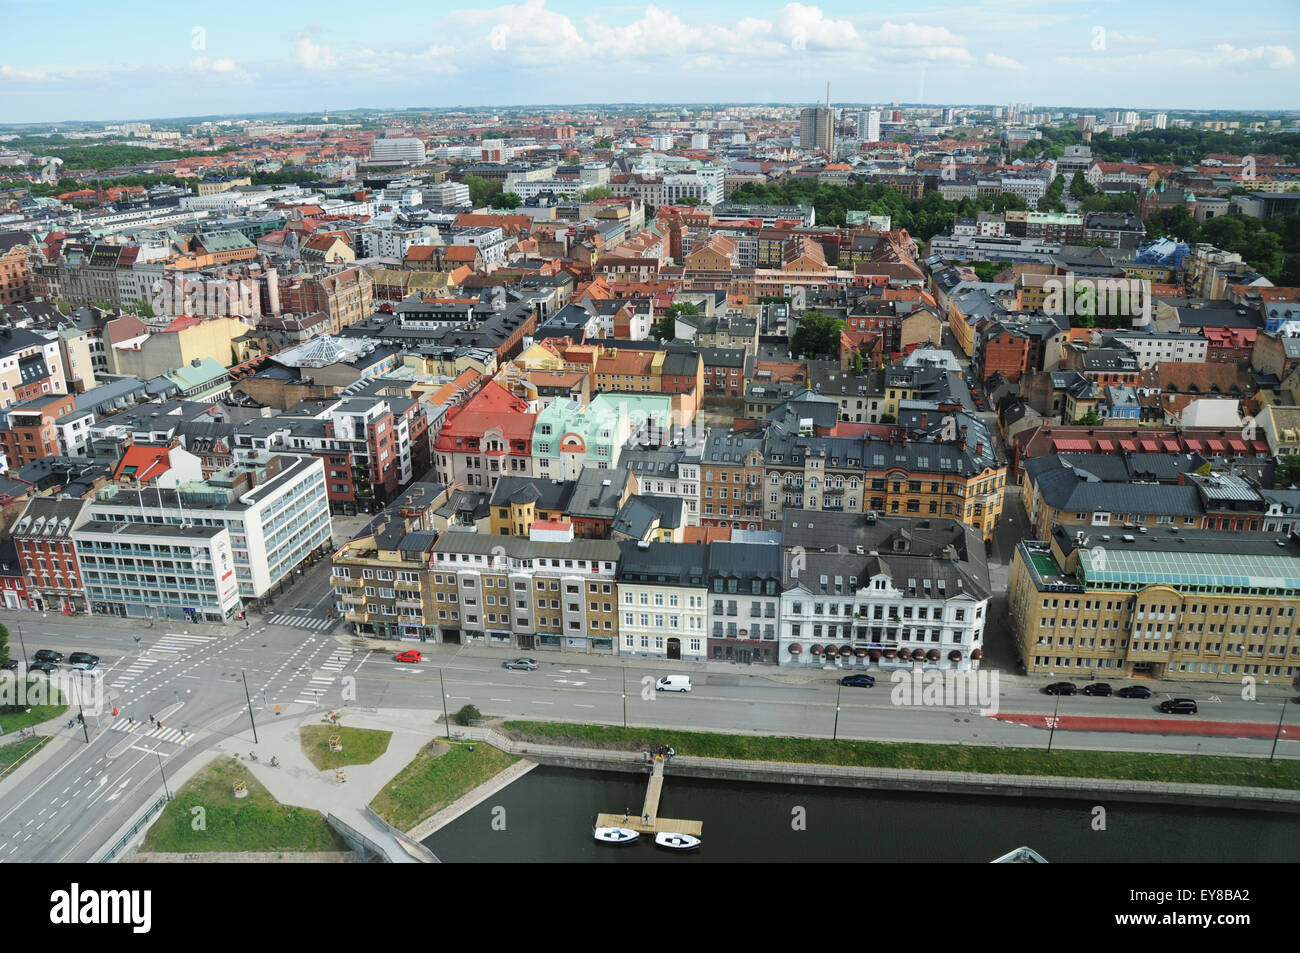 Overview of Malmö, the most populous city in Skåne County, and the third largest city in Sweden - Stock Image